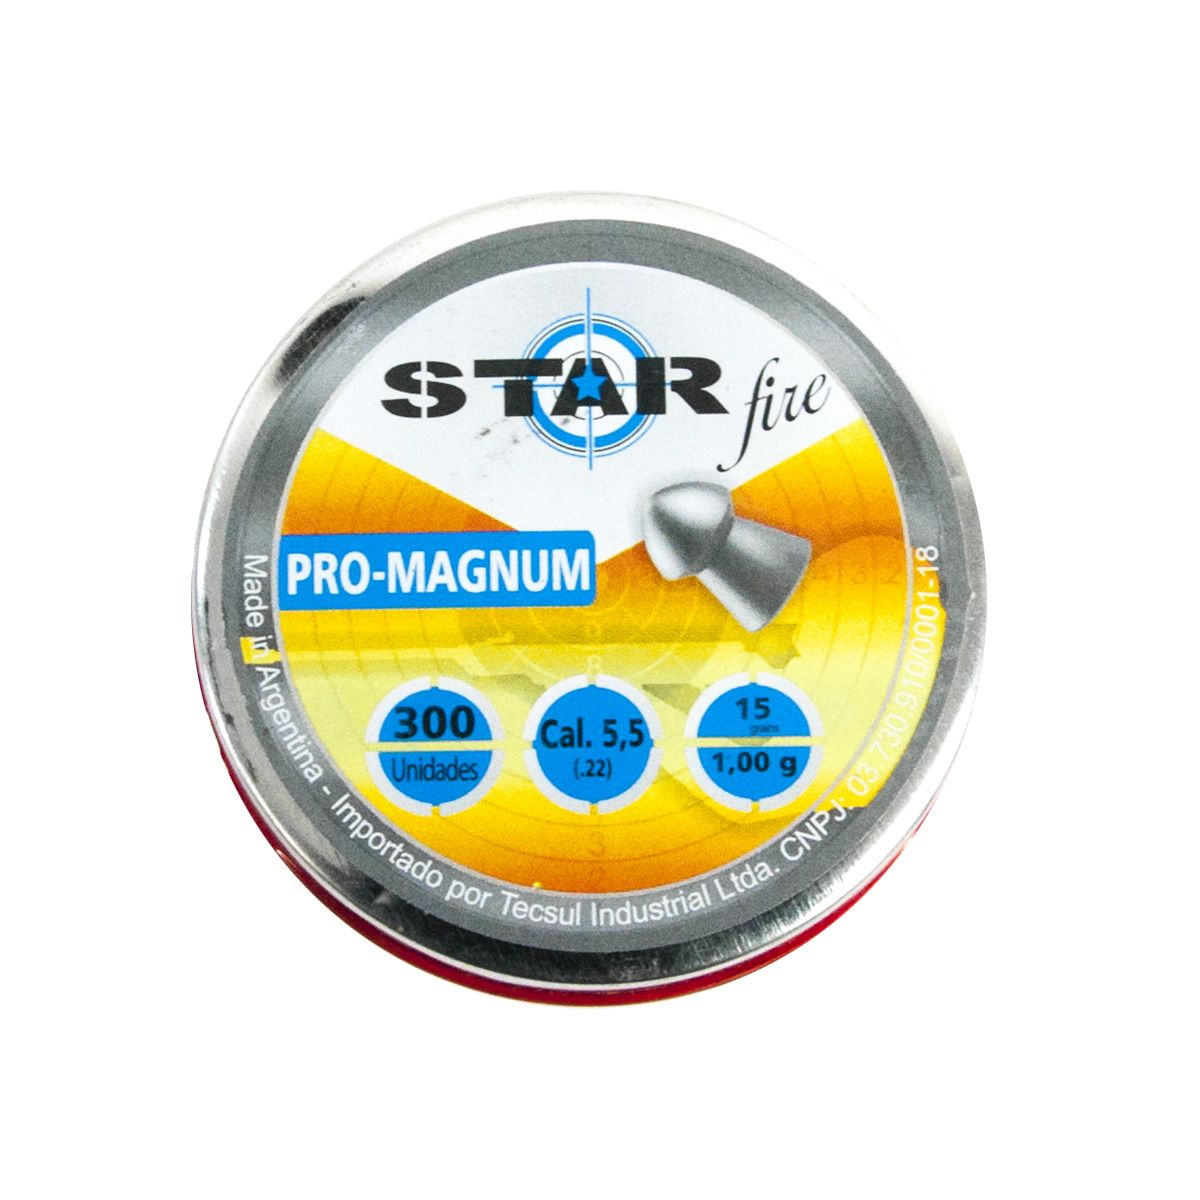 Chumbinho Star Fire Pro Magnum 5,5mm cx 300 unidades